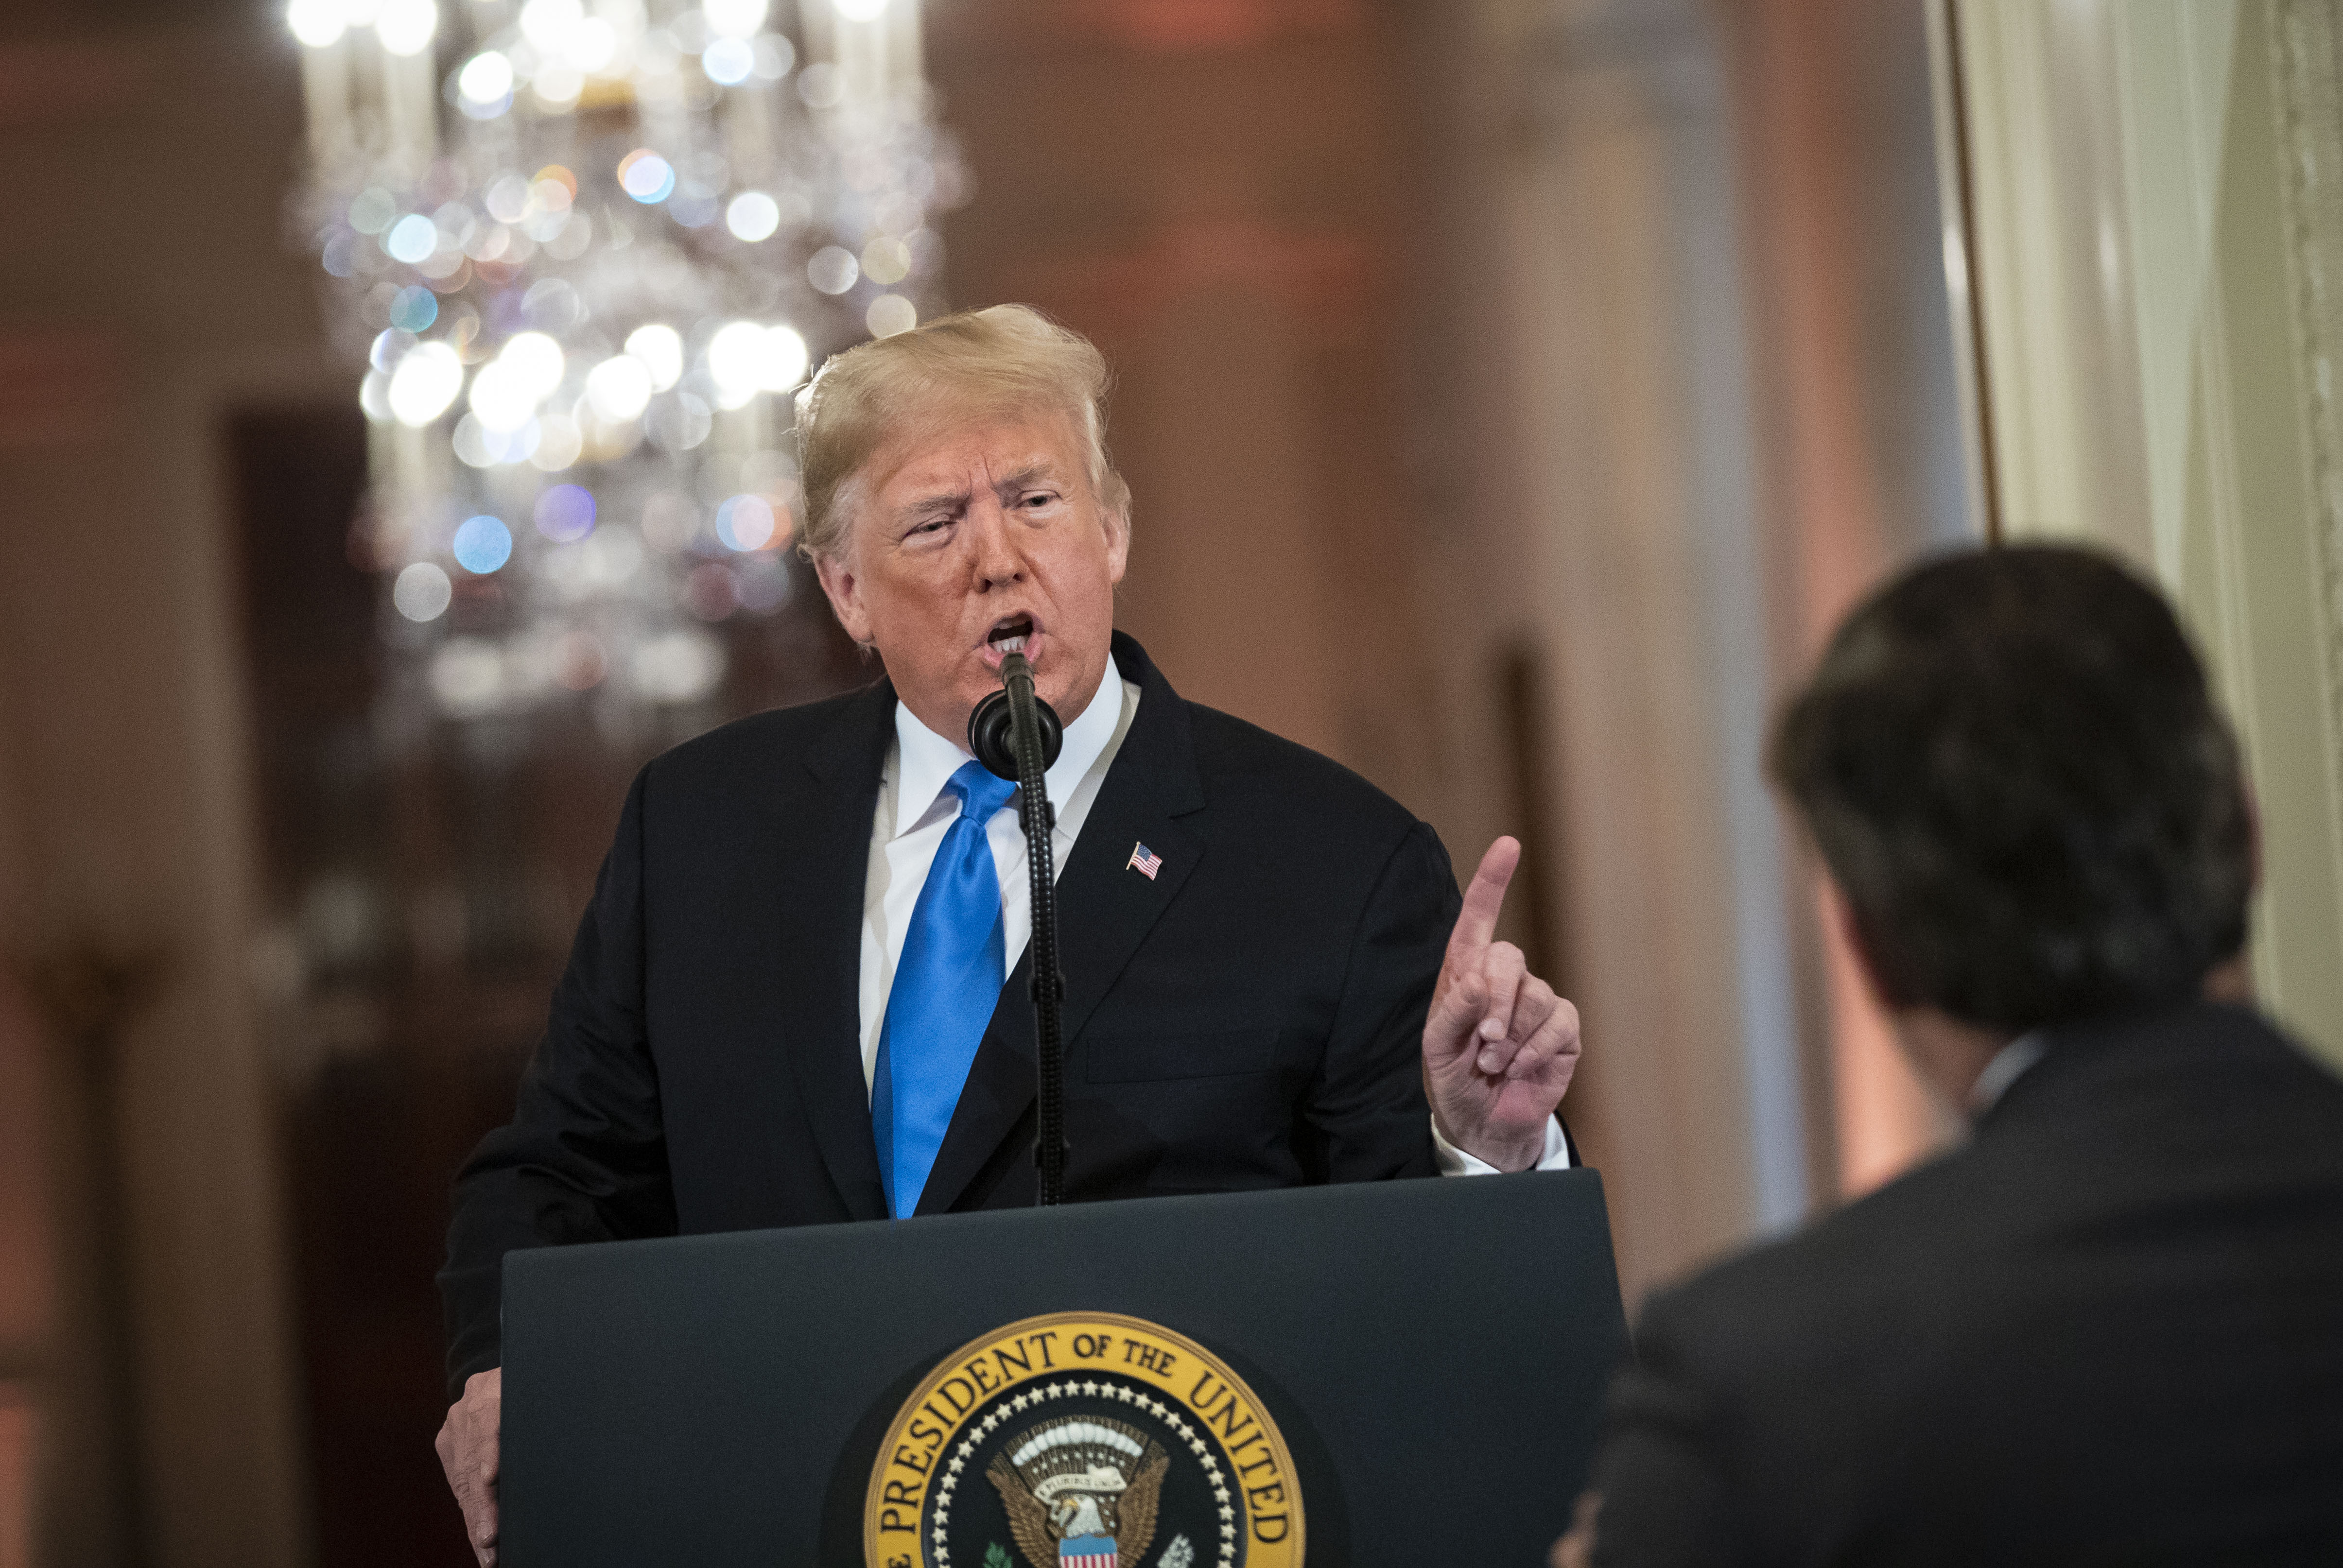 (AFP OUT) U.S. President Donald Trump gets into an exchange with CNN reporter Jim Acosta during a news conference a day after the midterm elections on November 7, 2018 in the East Room of the White House in Washington, DC. Republicans kept the Senate majority but lost control of the House to the Democrats.